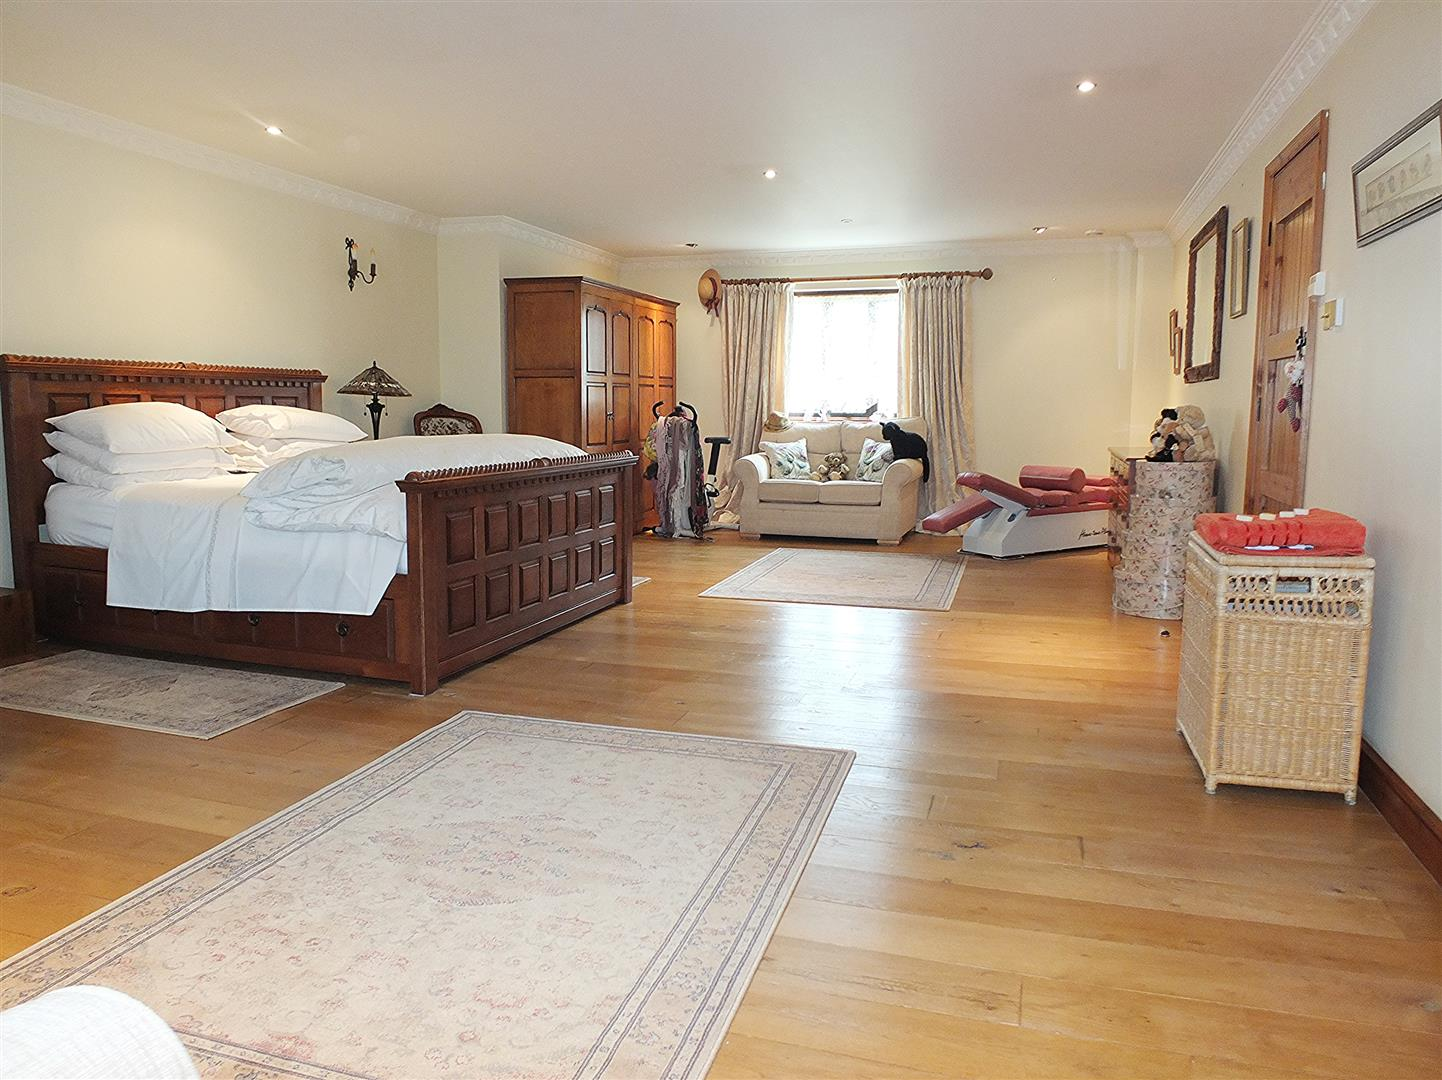 5 bed detached house for sale in Boston, PE20 2DB  - Property Image 14